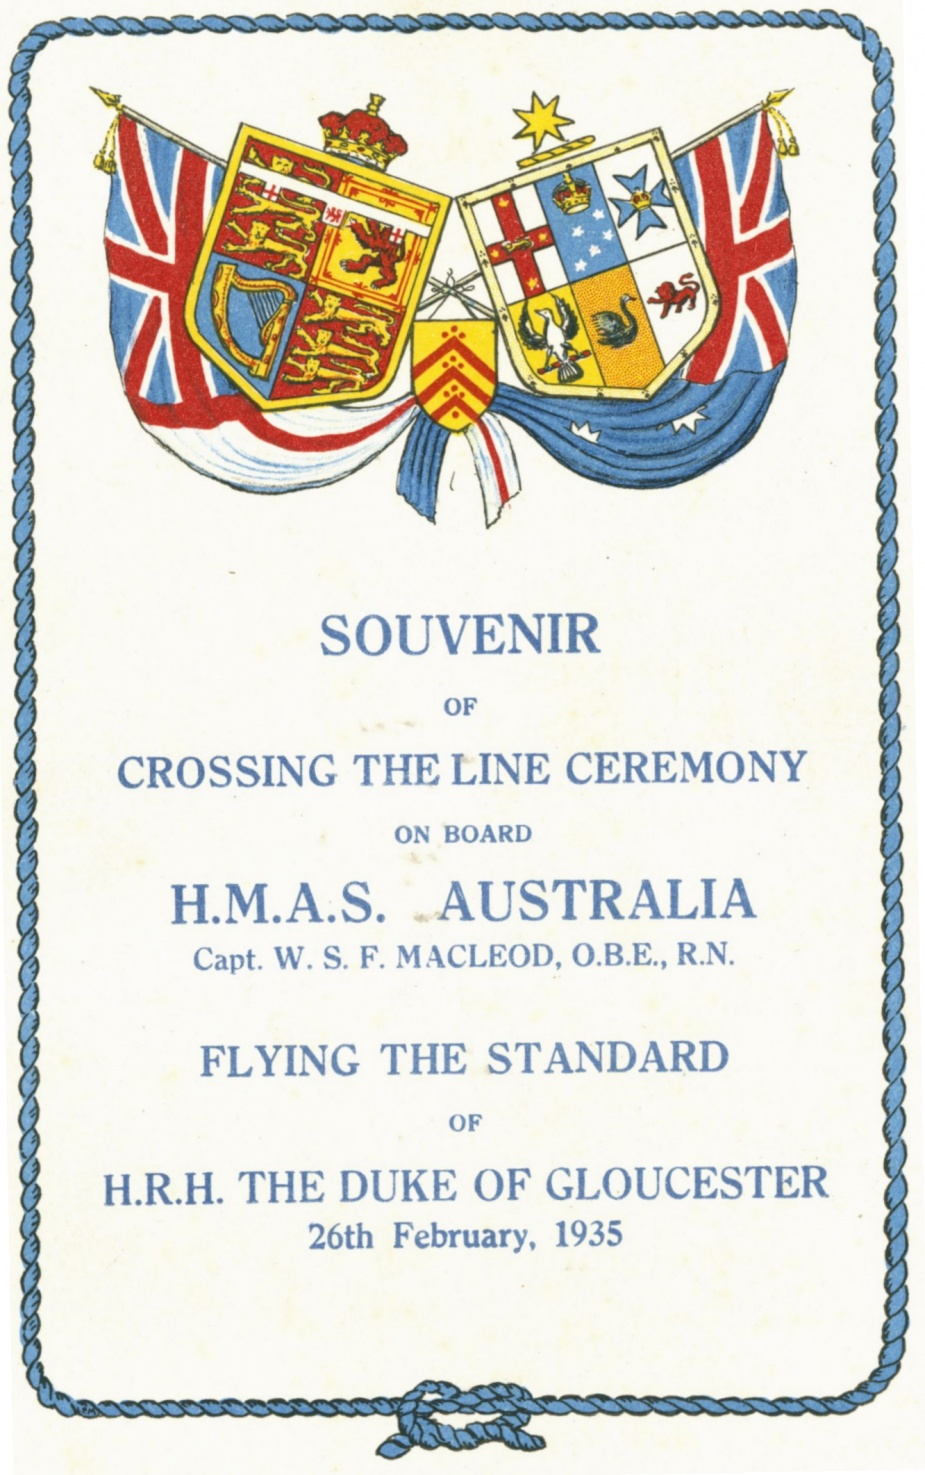 HMAS Australia (II) had the honour of flying Prince Henry the Duke of Gloucester's Royal standard. Several members of the Royal Family have been inducted into Neptune's realm, as was U.S President Franklin D Roosevelt onboard USS Indianapolis.